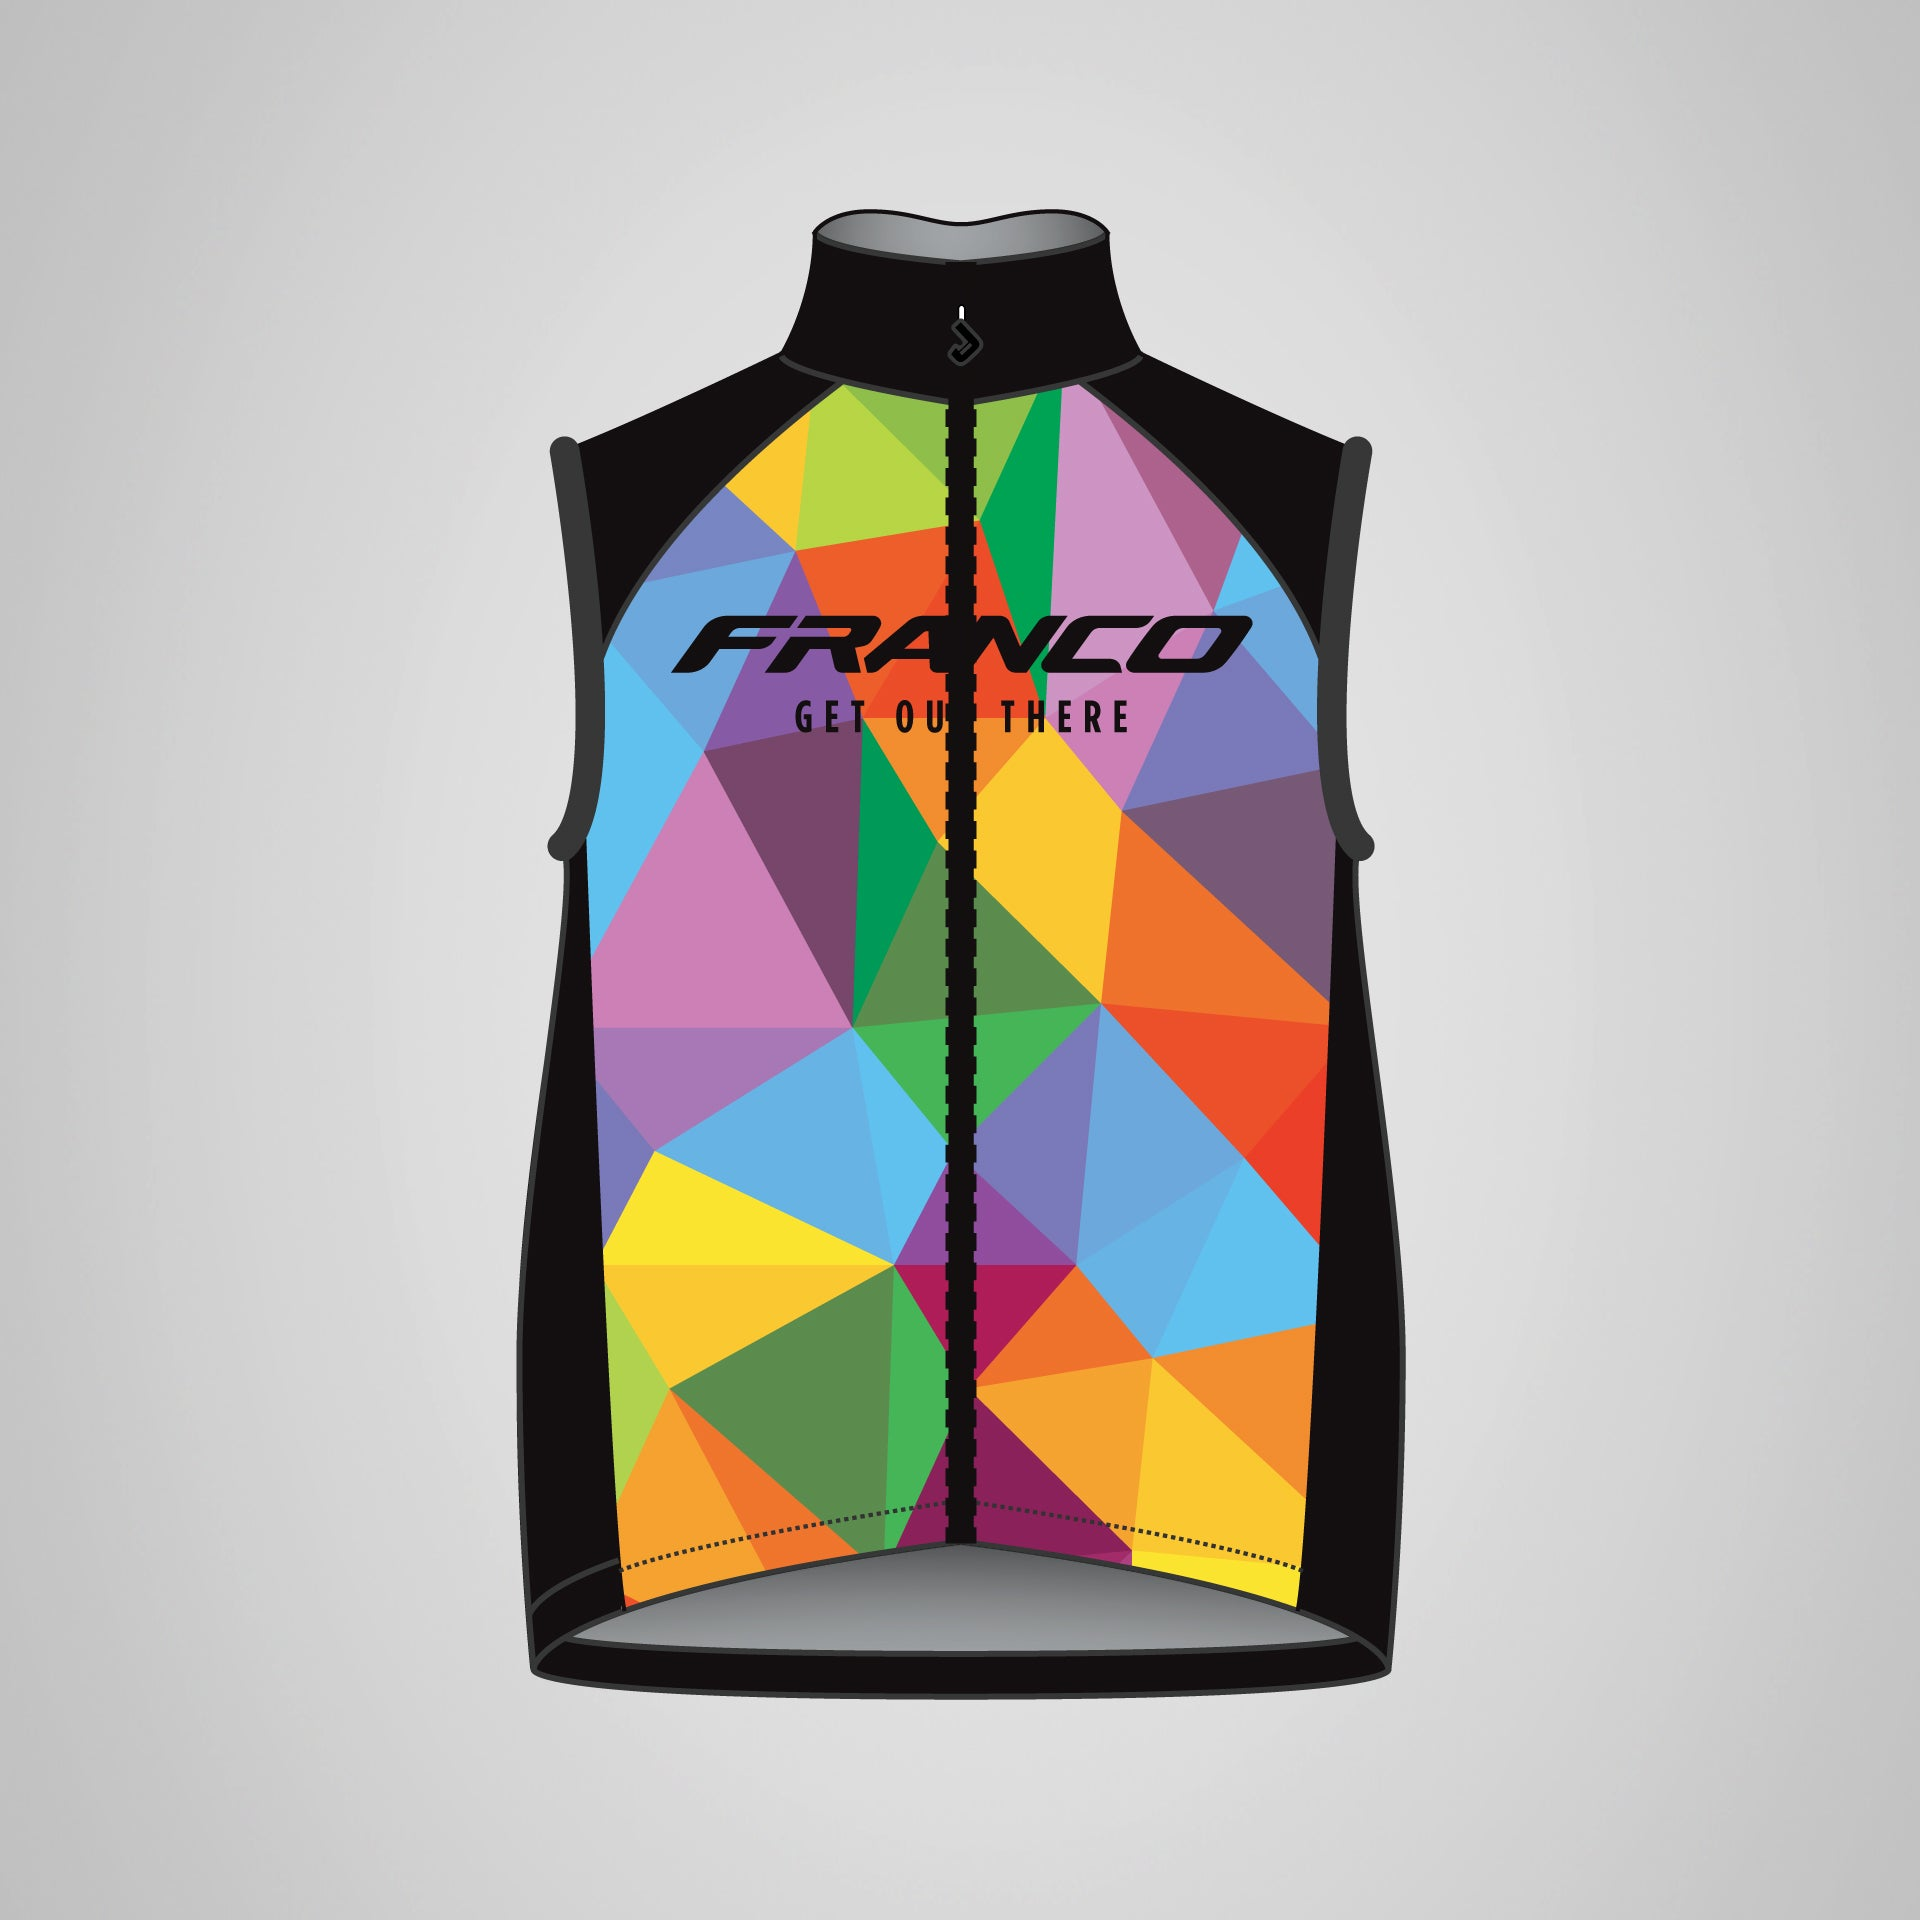 The 13 Wind Vest